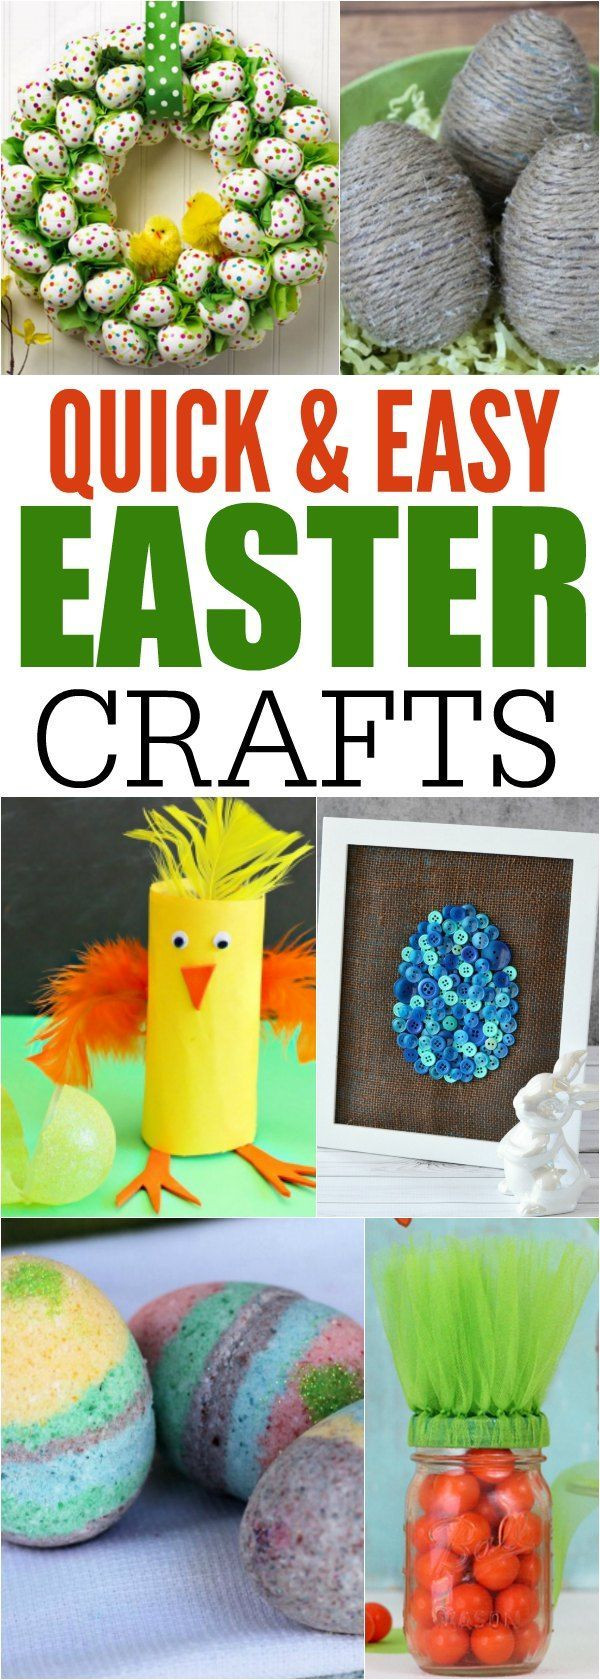 Best ideas about Easy Spring Crafts For Adults . Save or Pin 25 best ideas about Easter crafts for adults on Pinterest Now.